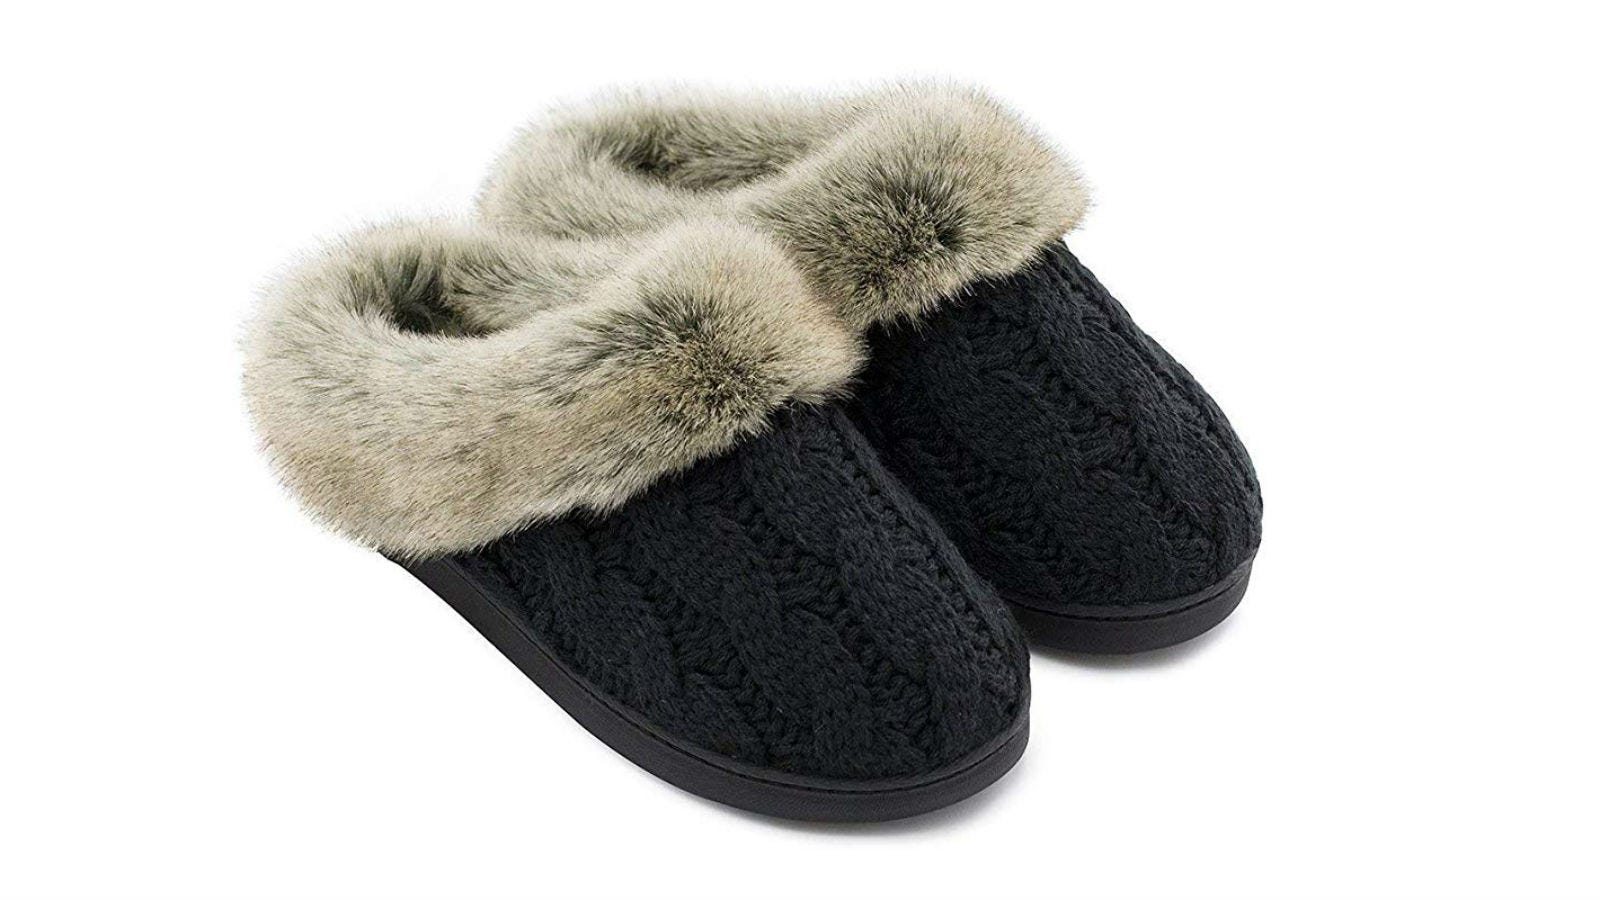 A pair of Ultraideas Women's Soft Yarn Cable Knitted Slippers in black.